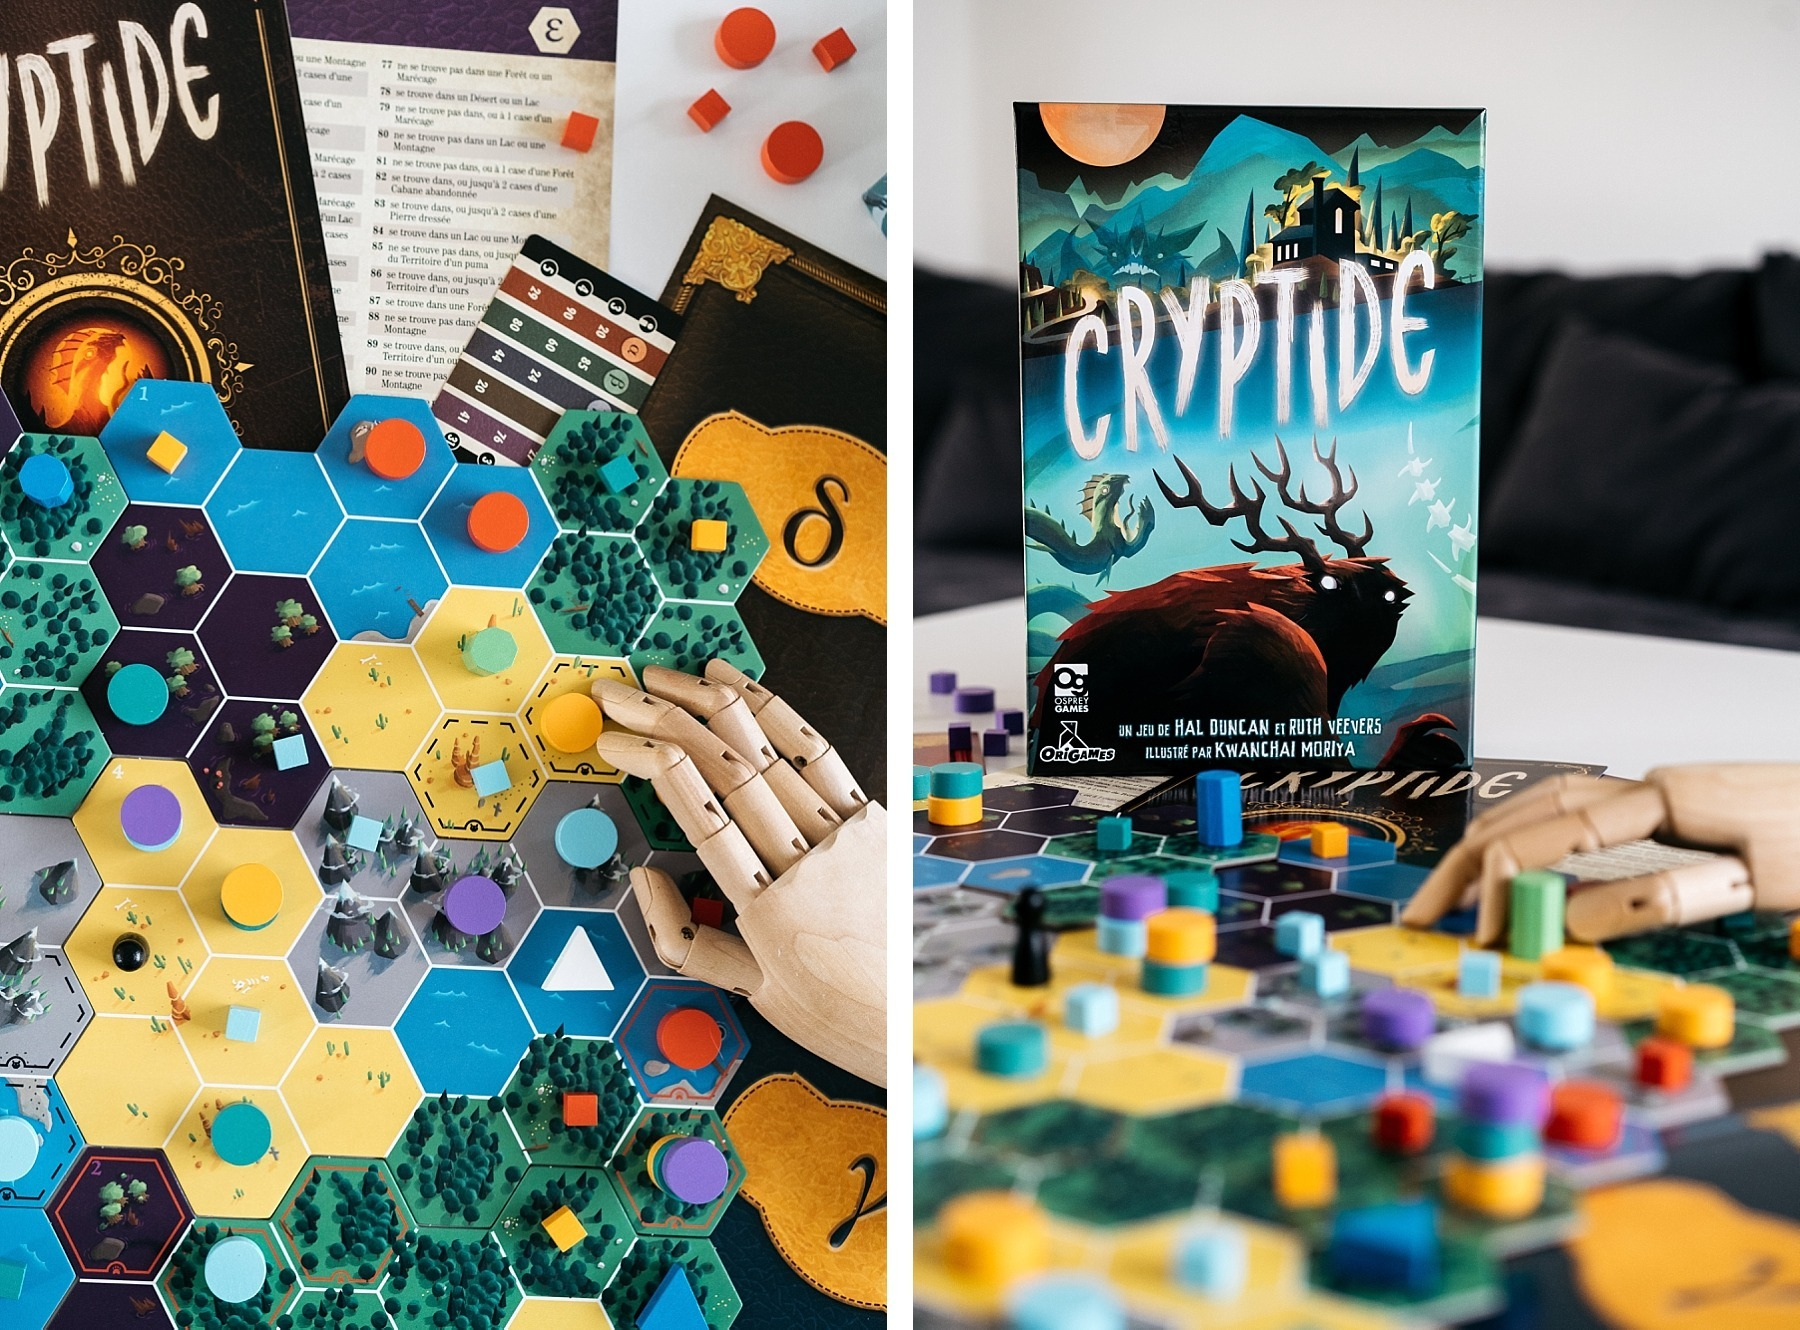 Cryptide origames